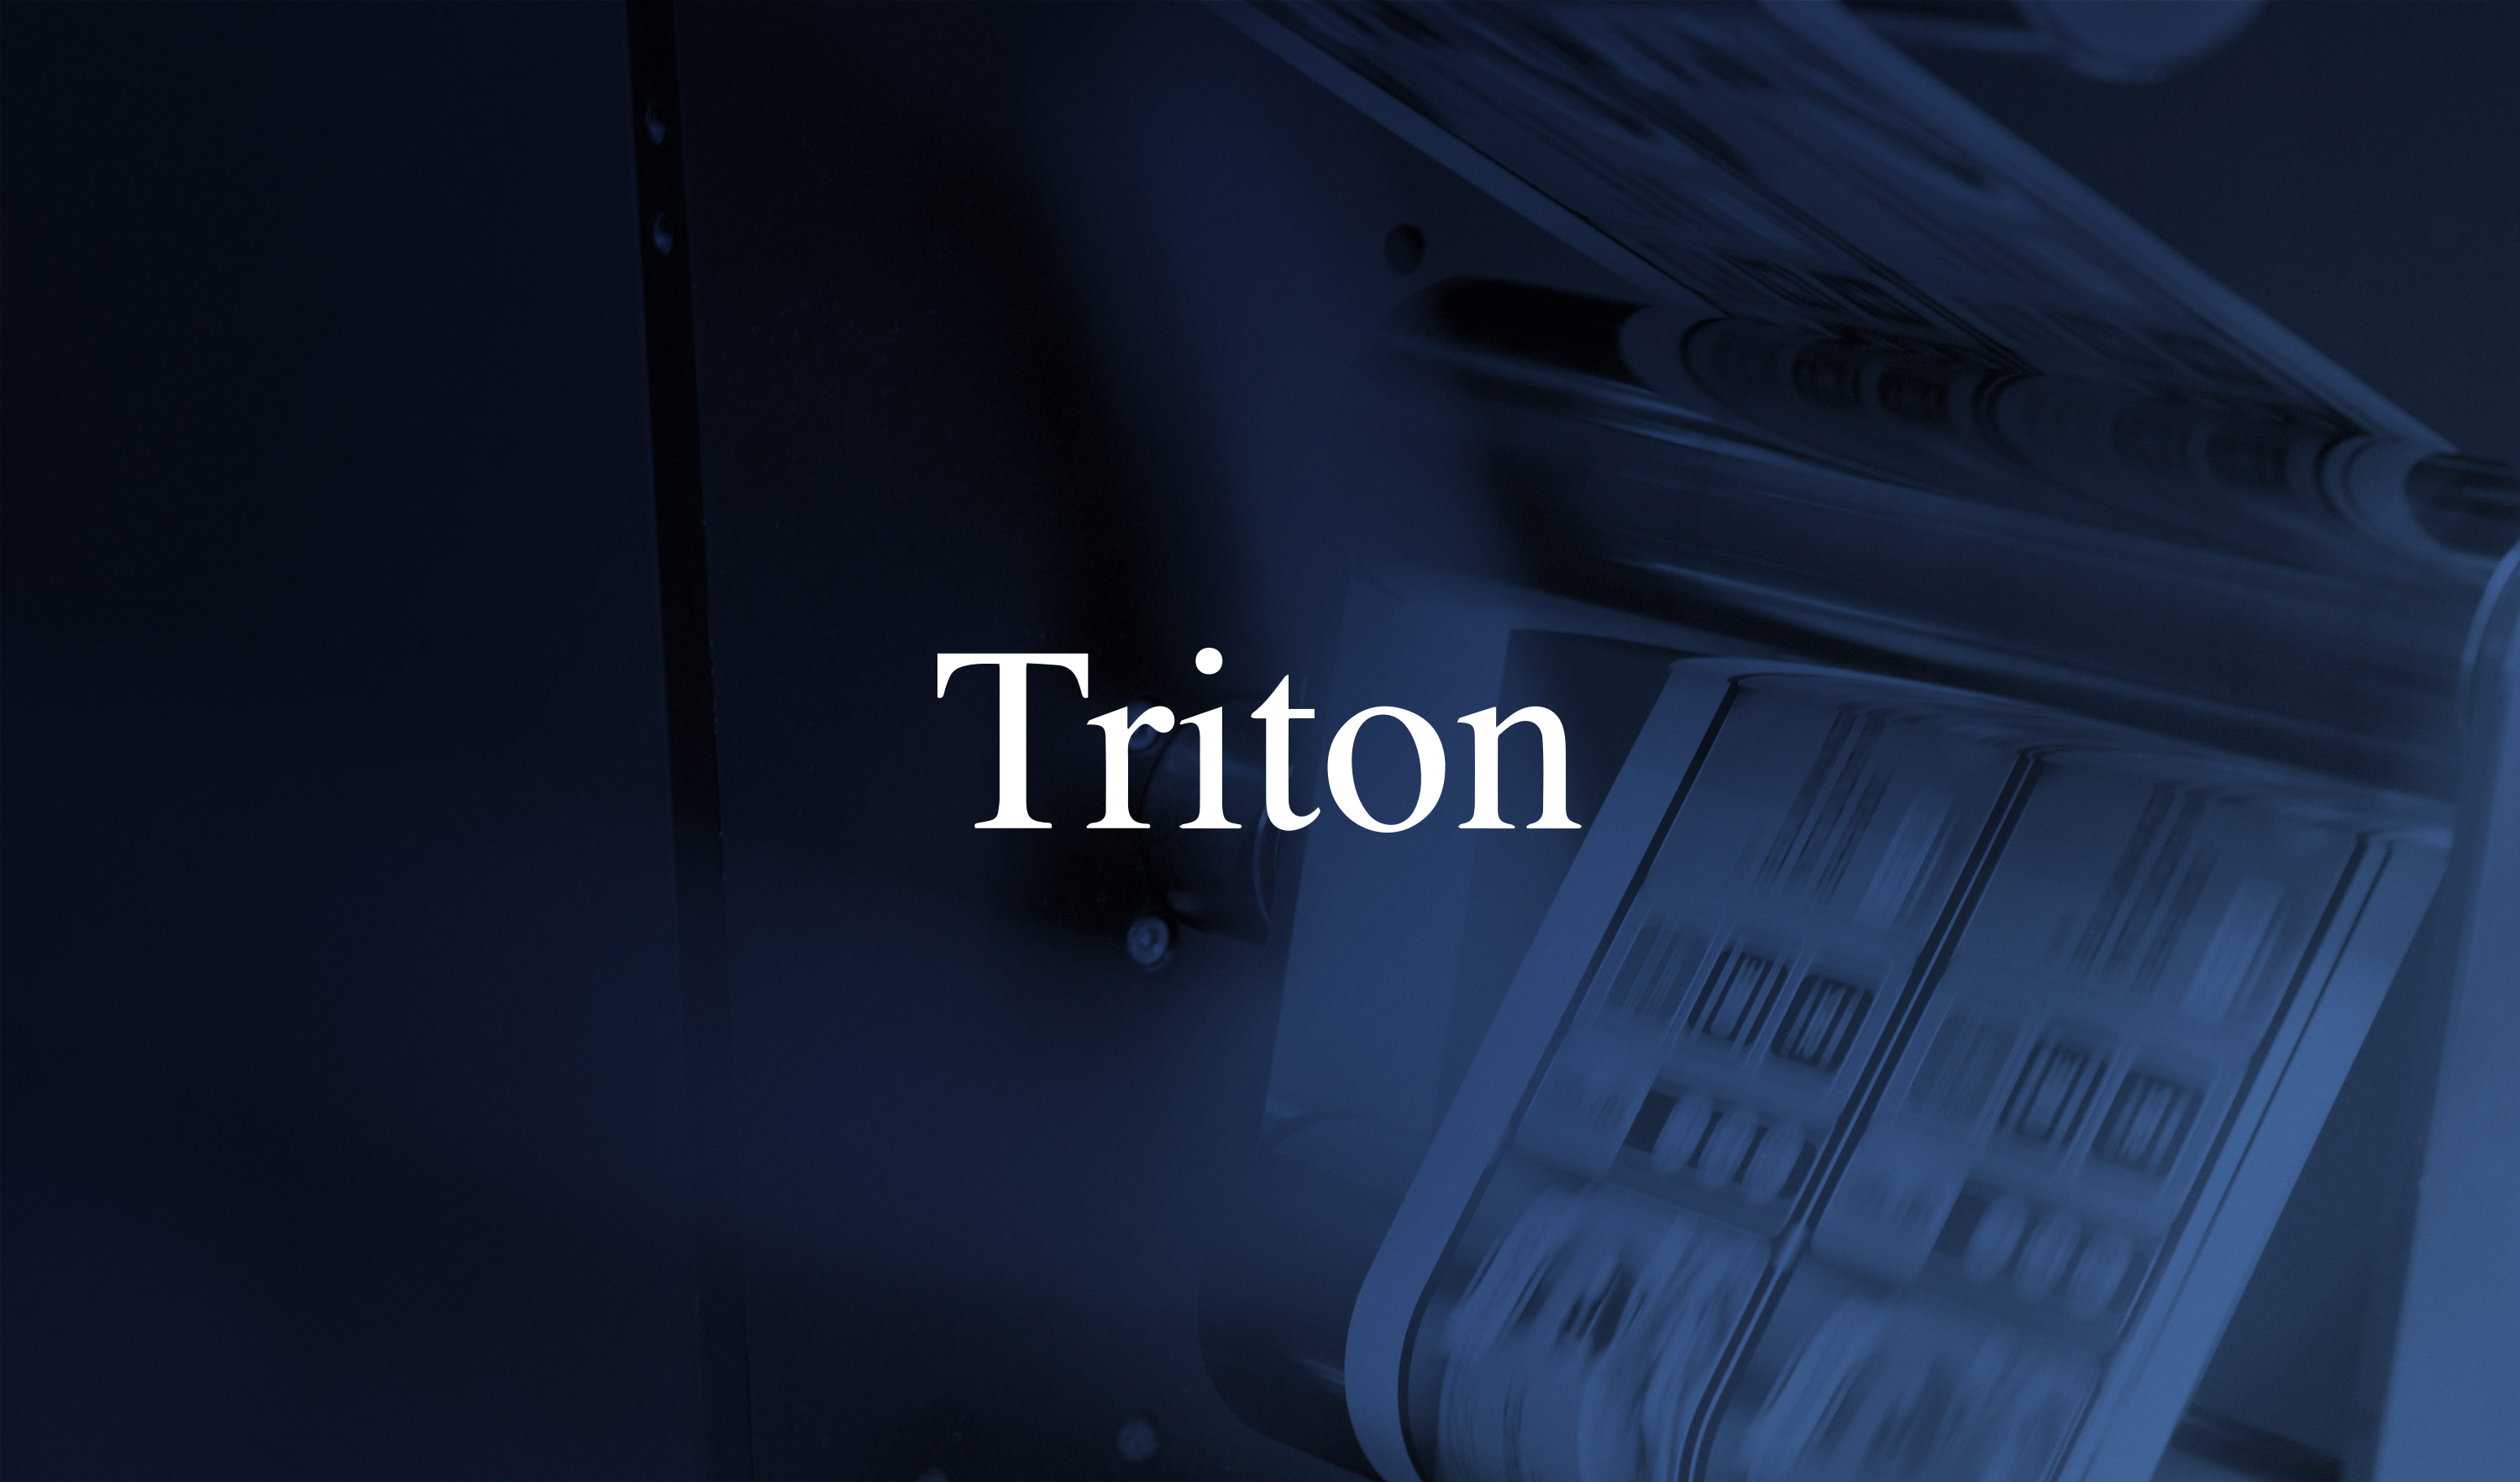 Triton completes acquisition of stake in All4Labels